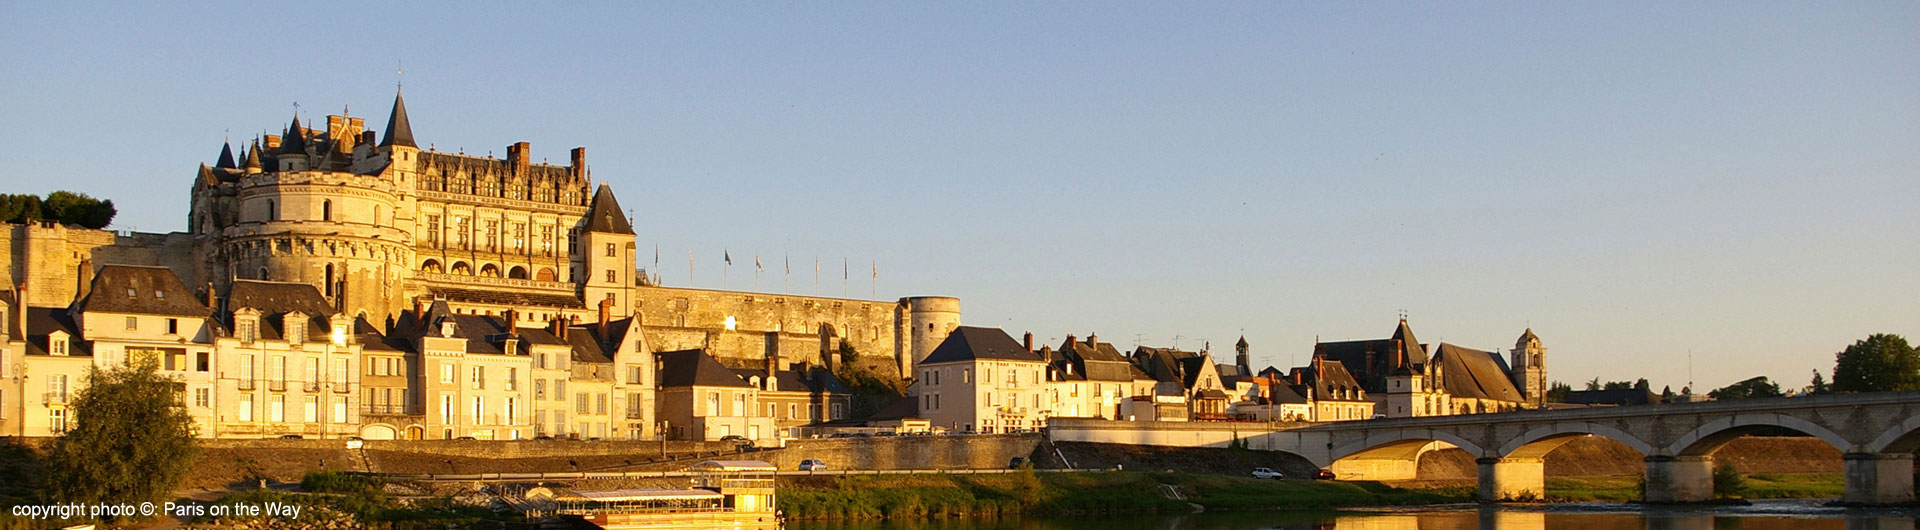 Guided Tour of Amboise